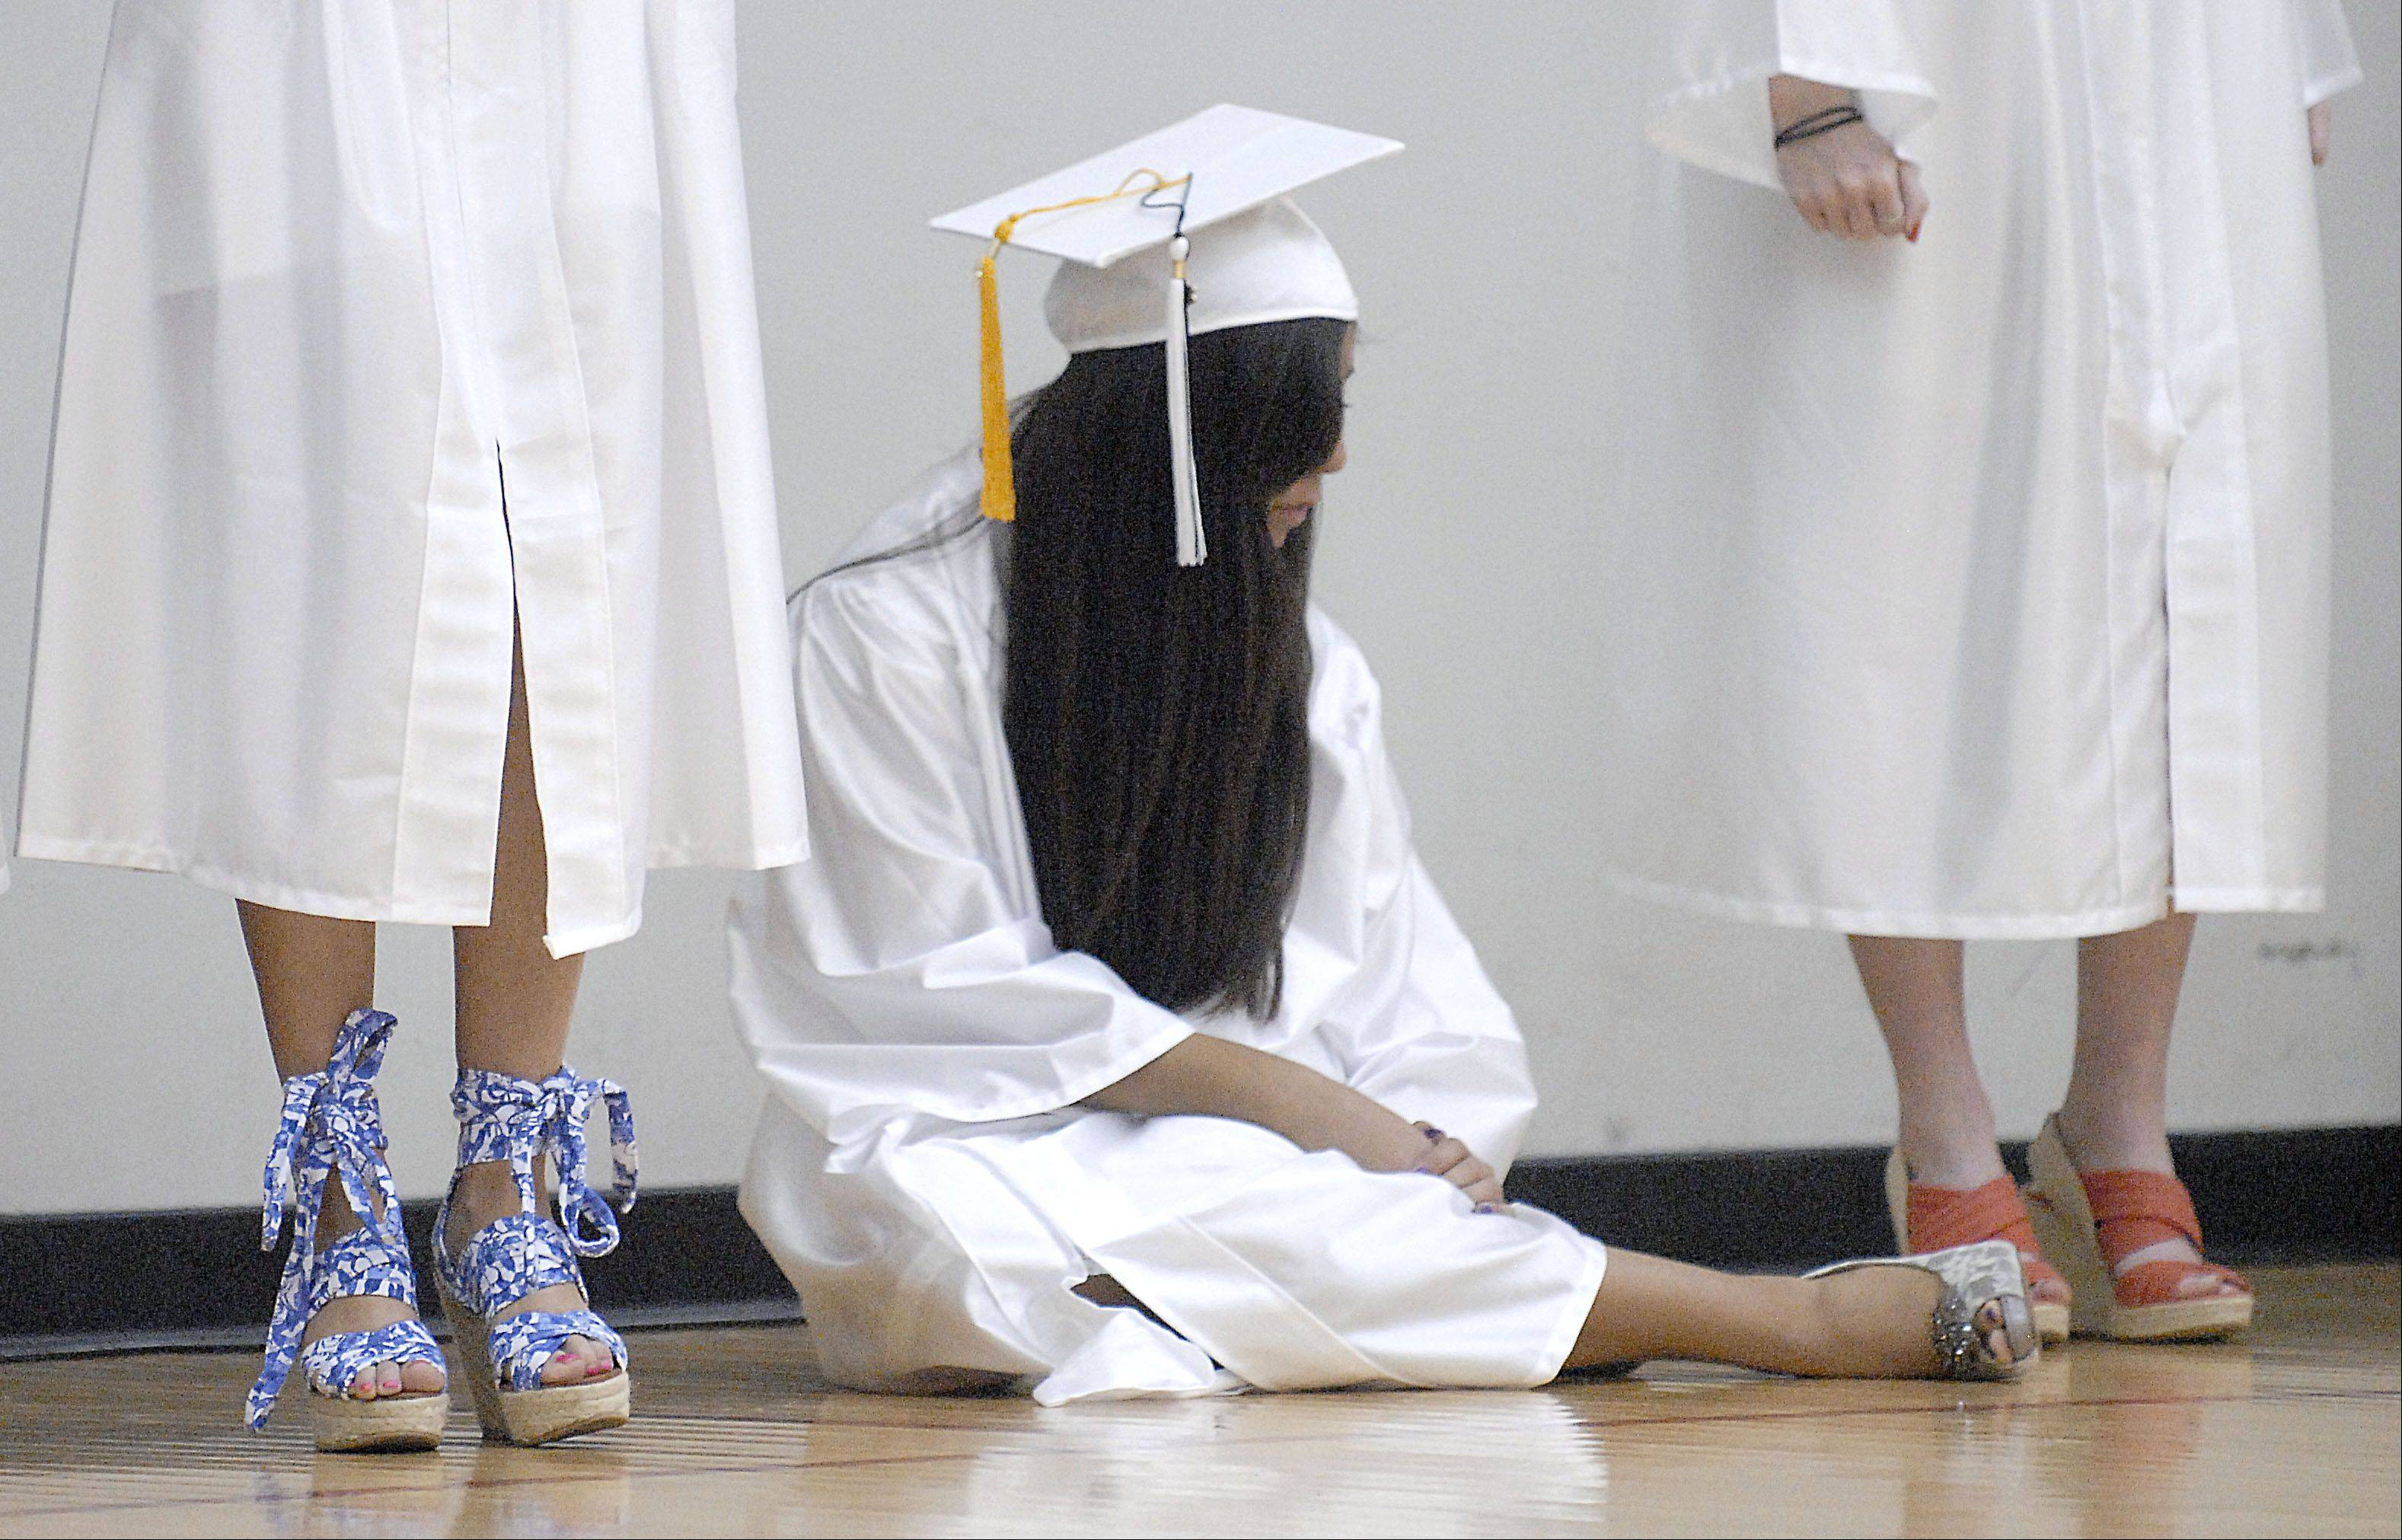 Marissa Villafuerte sits on the floor waiting for Kaneland High School's commencement ceremony to begin at the NIU Convocation Center in DeKalb on Saturday, June 2.